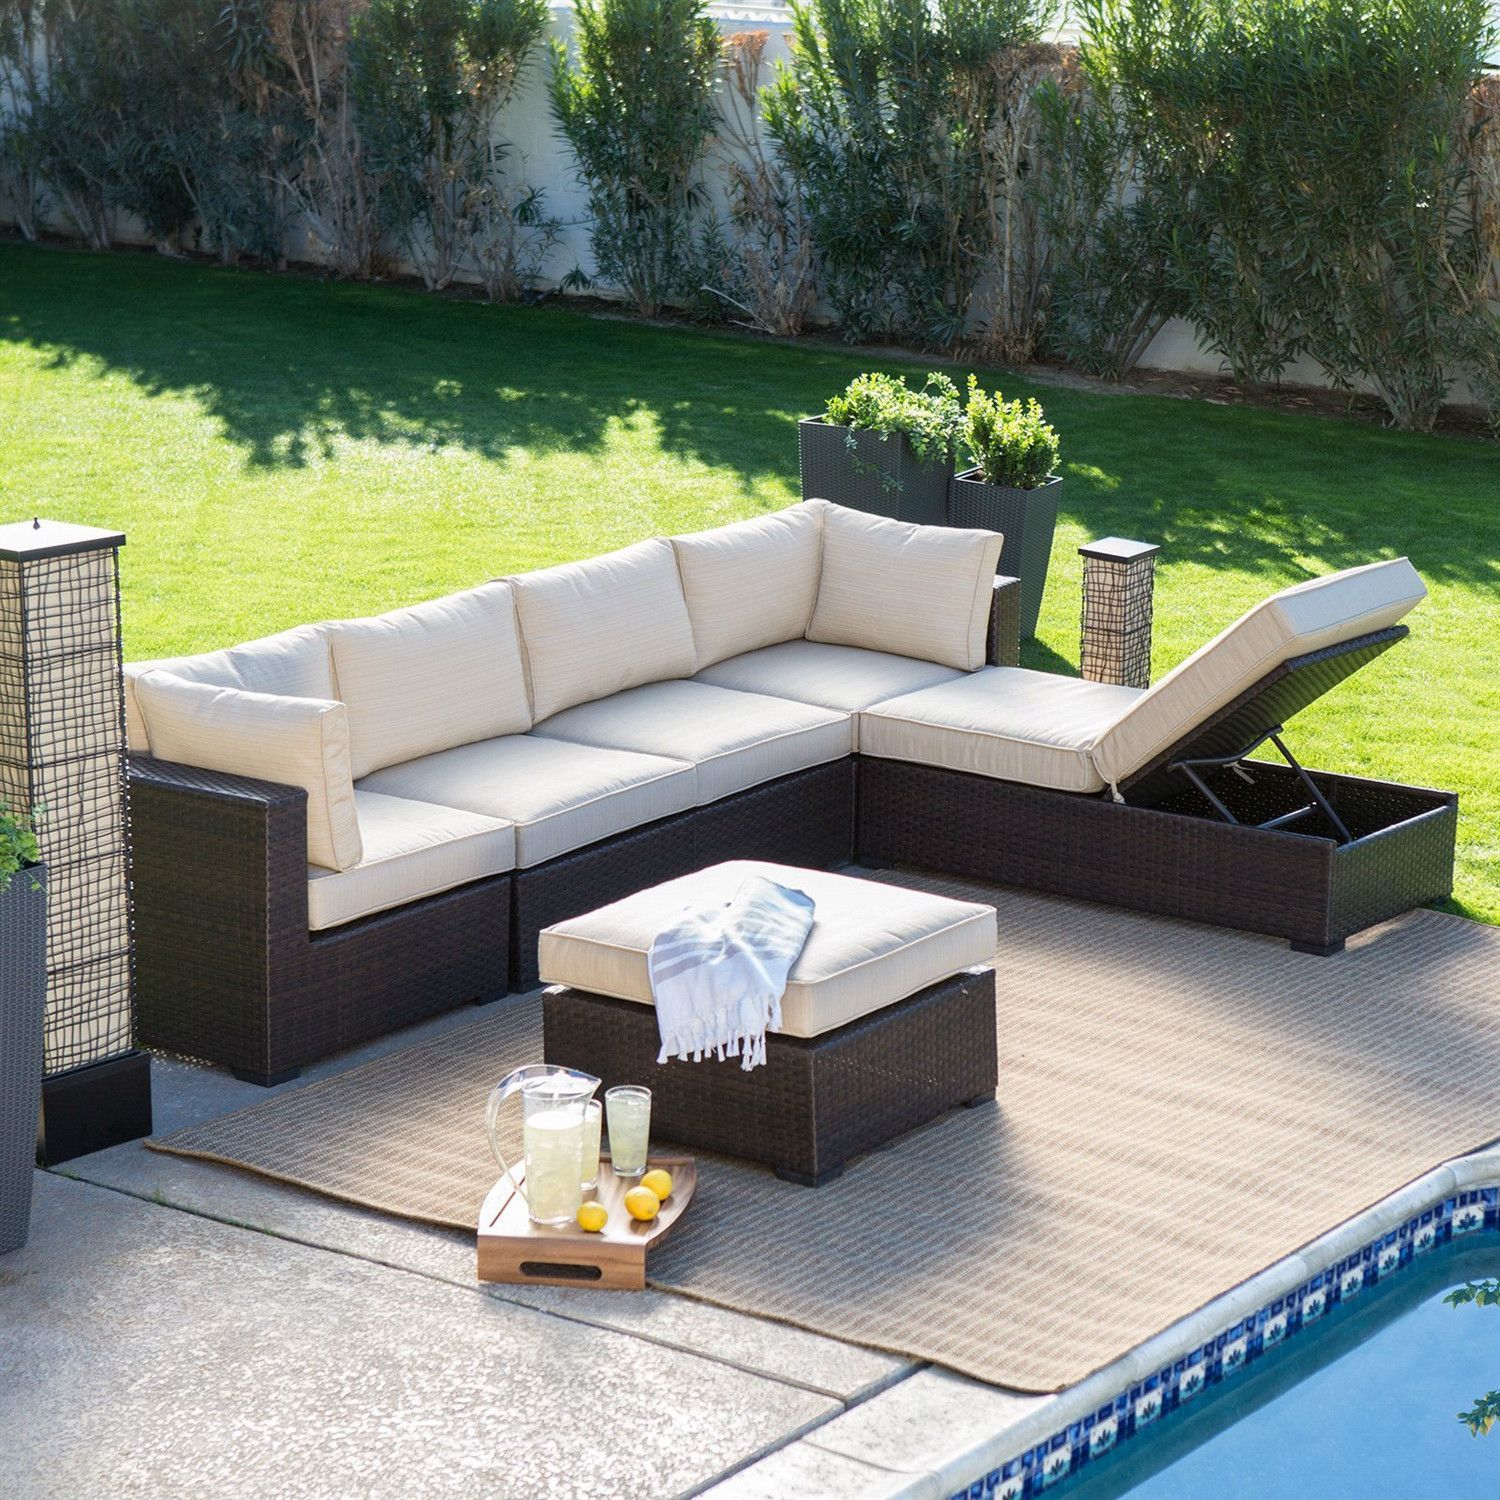 Outdoor Wicker Resin 6-Piece Sectional Sofa Patio Furniture Conversation  Set with Tan Stripe Cushions - Outdoor Wicker Resin 6-Piece Sectional Sofa Patio Furniture